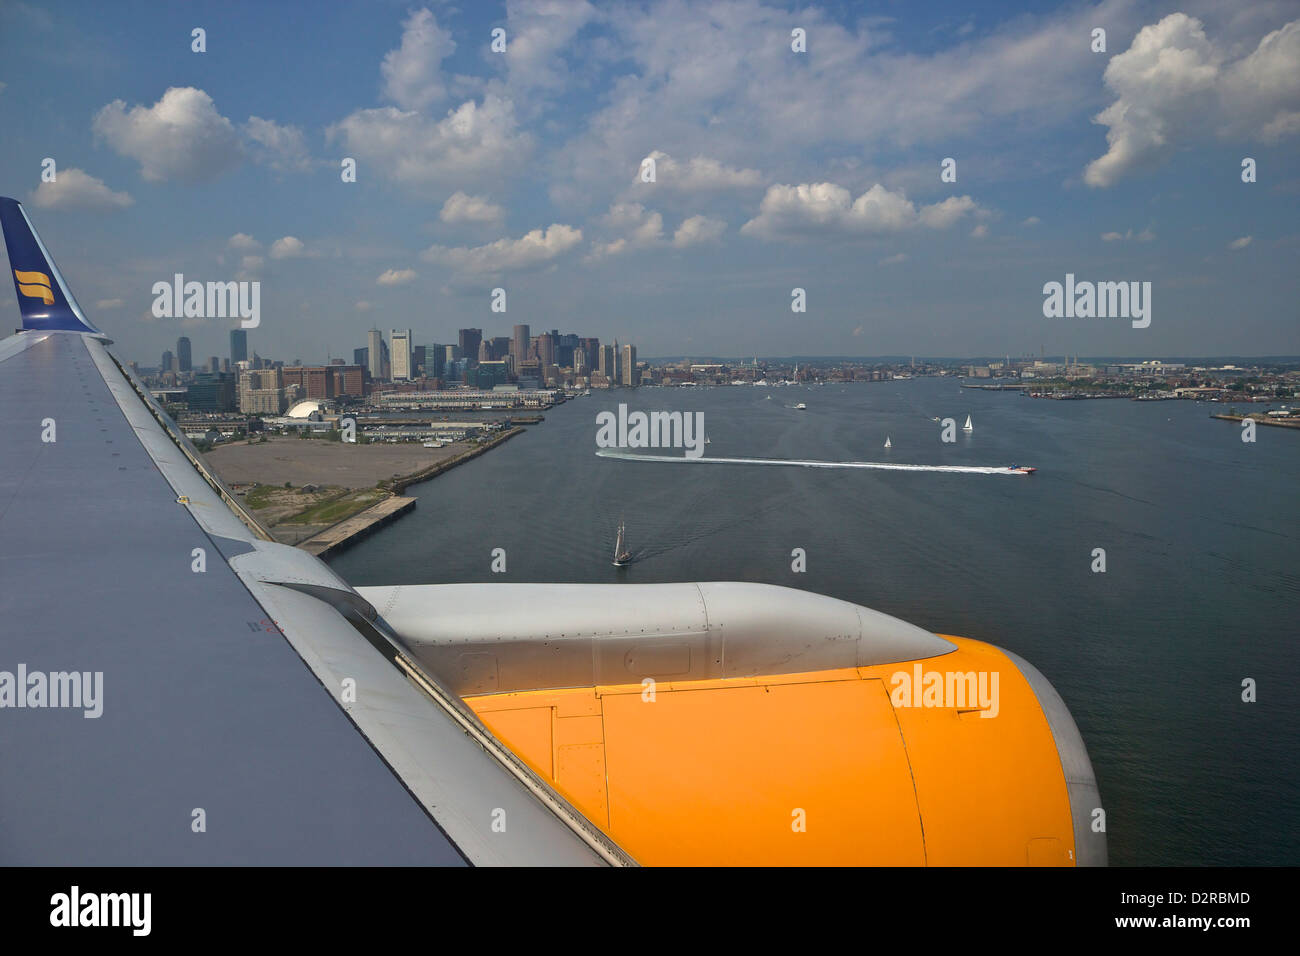 Vue depuis la fenêtre de l'avion à réaction d'Icelandair sur Boston, Massachusetts, New England, Photo Stock